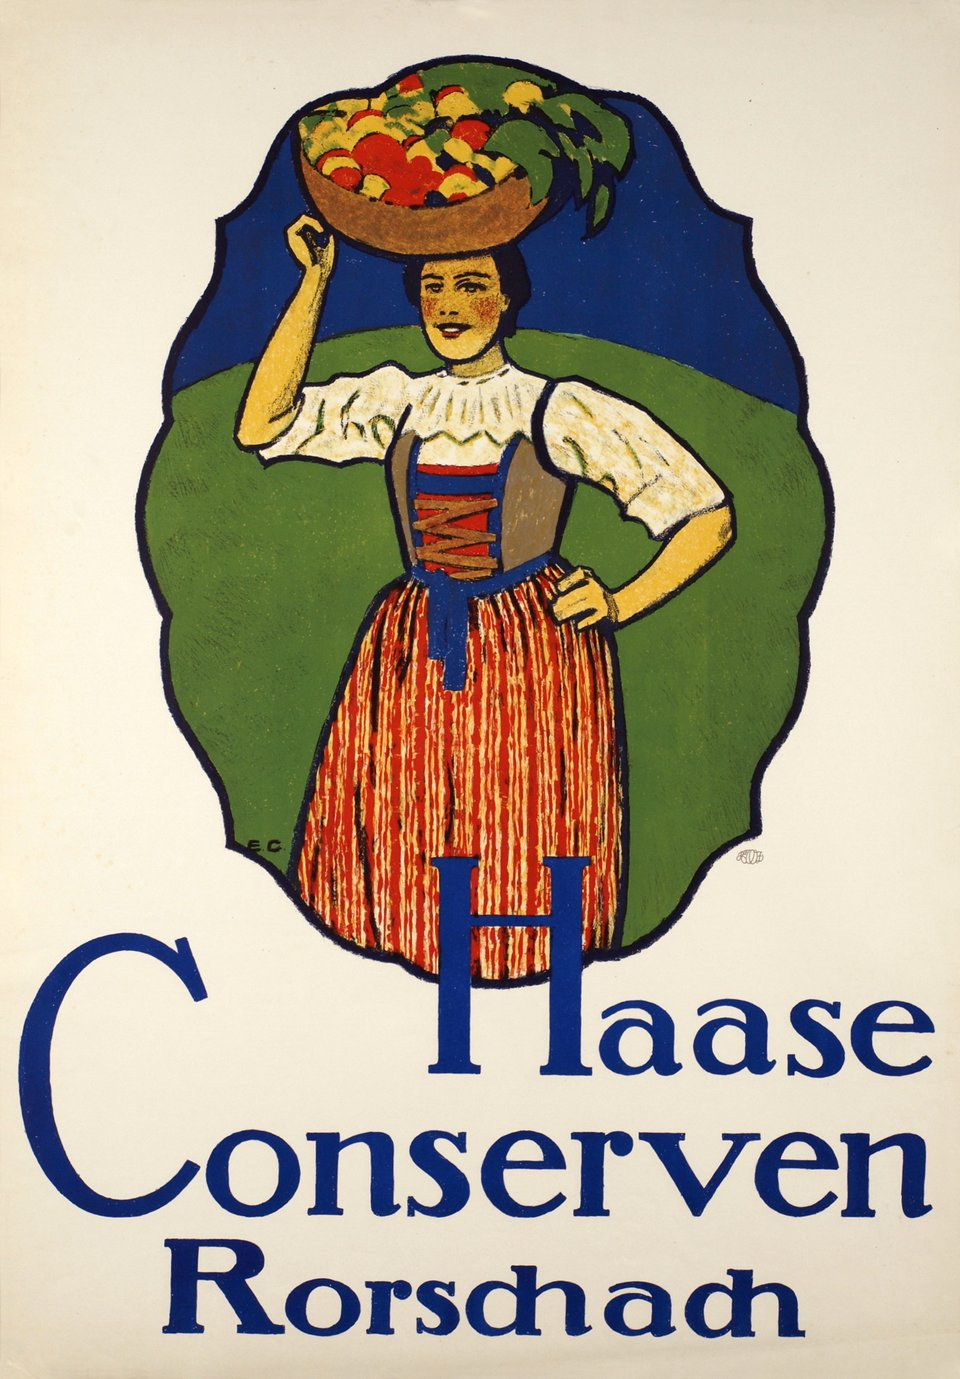 Haase Conserven Rorschach. – Vintage poster – Emil CARDINAUX – 1914